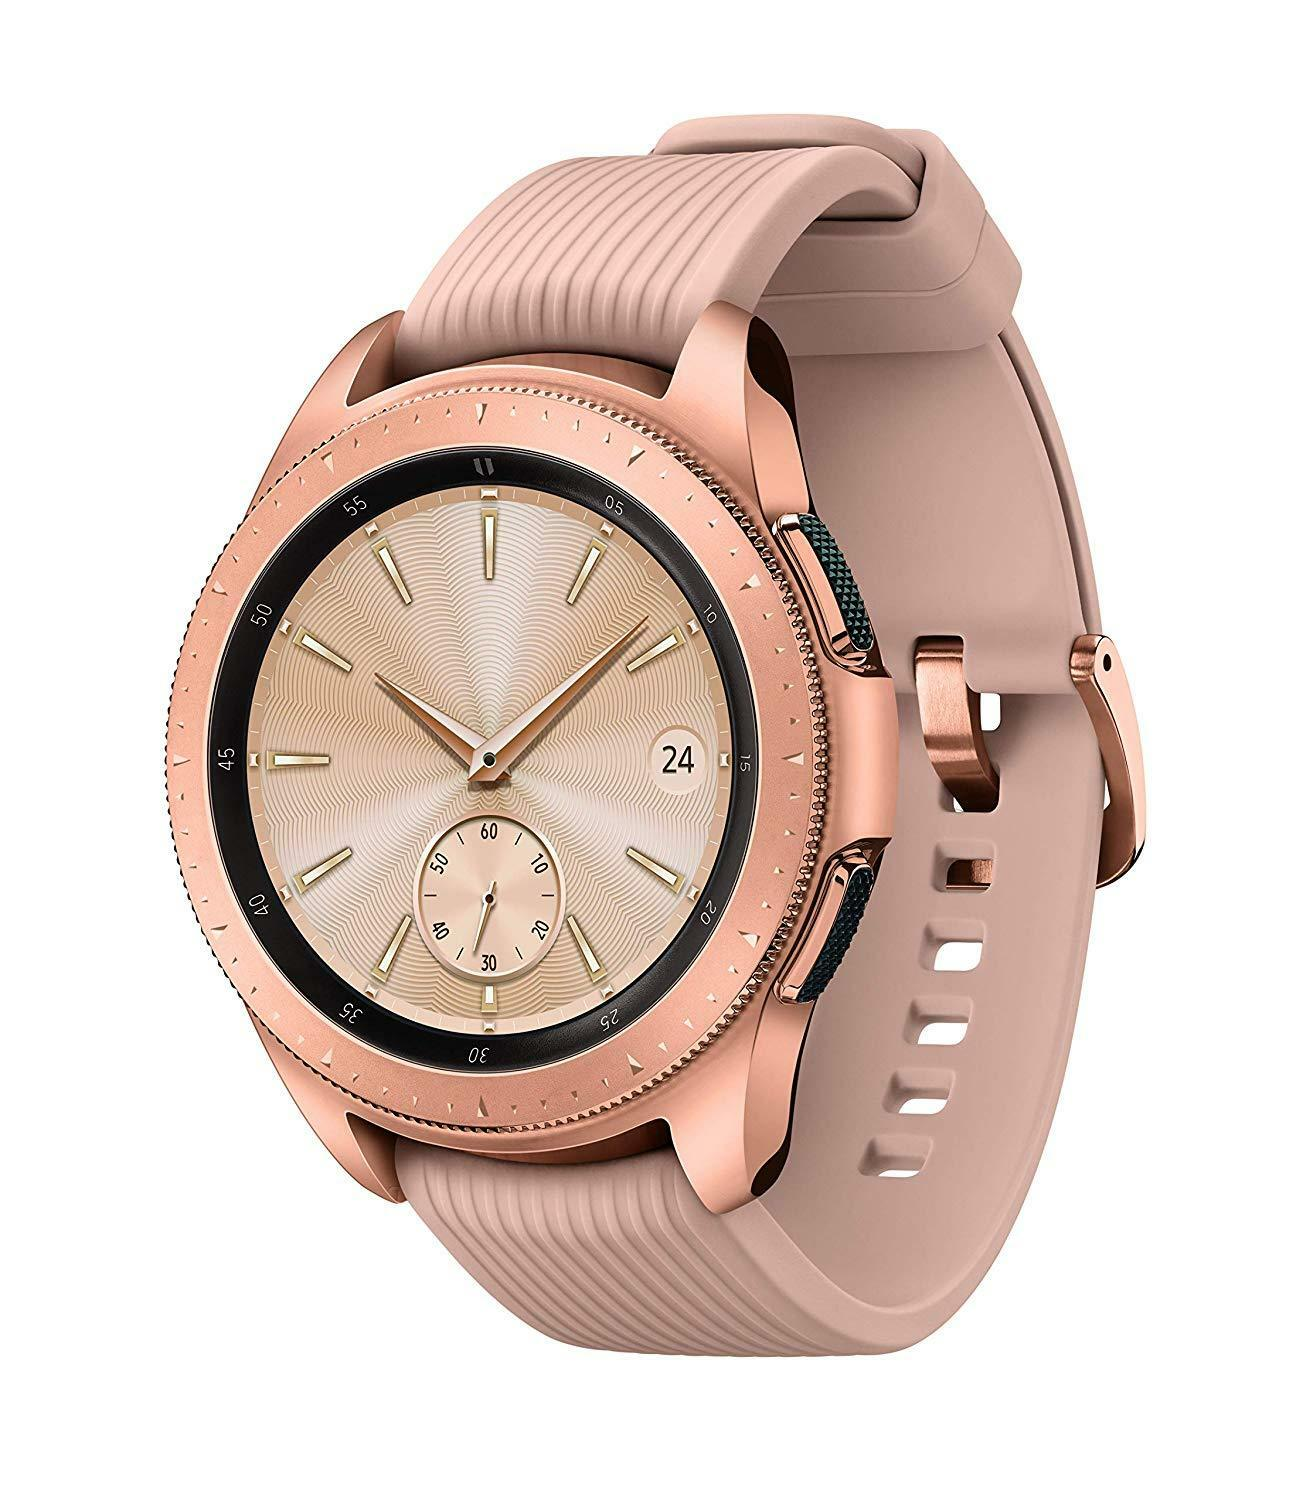 Samsung Galaxy 42mm Smartwatch (Refurbished) $119.20 & More + Free Shipping @ Vip Outlet via eBay